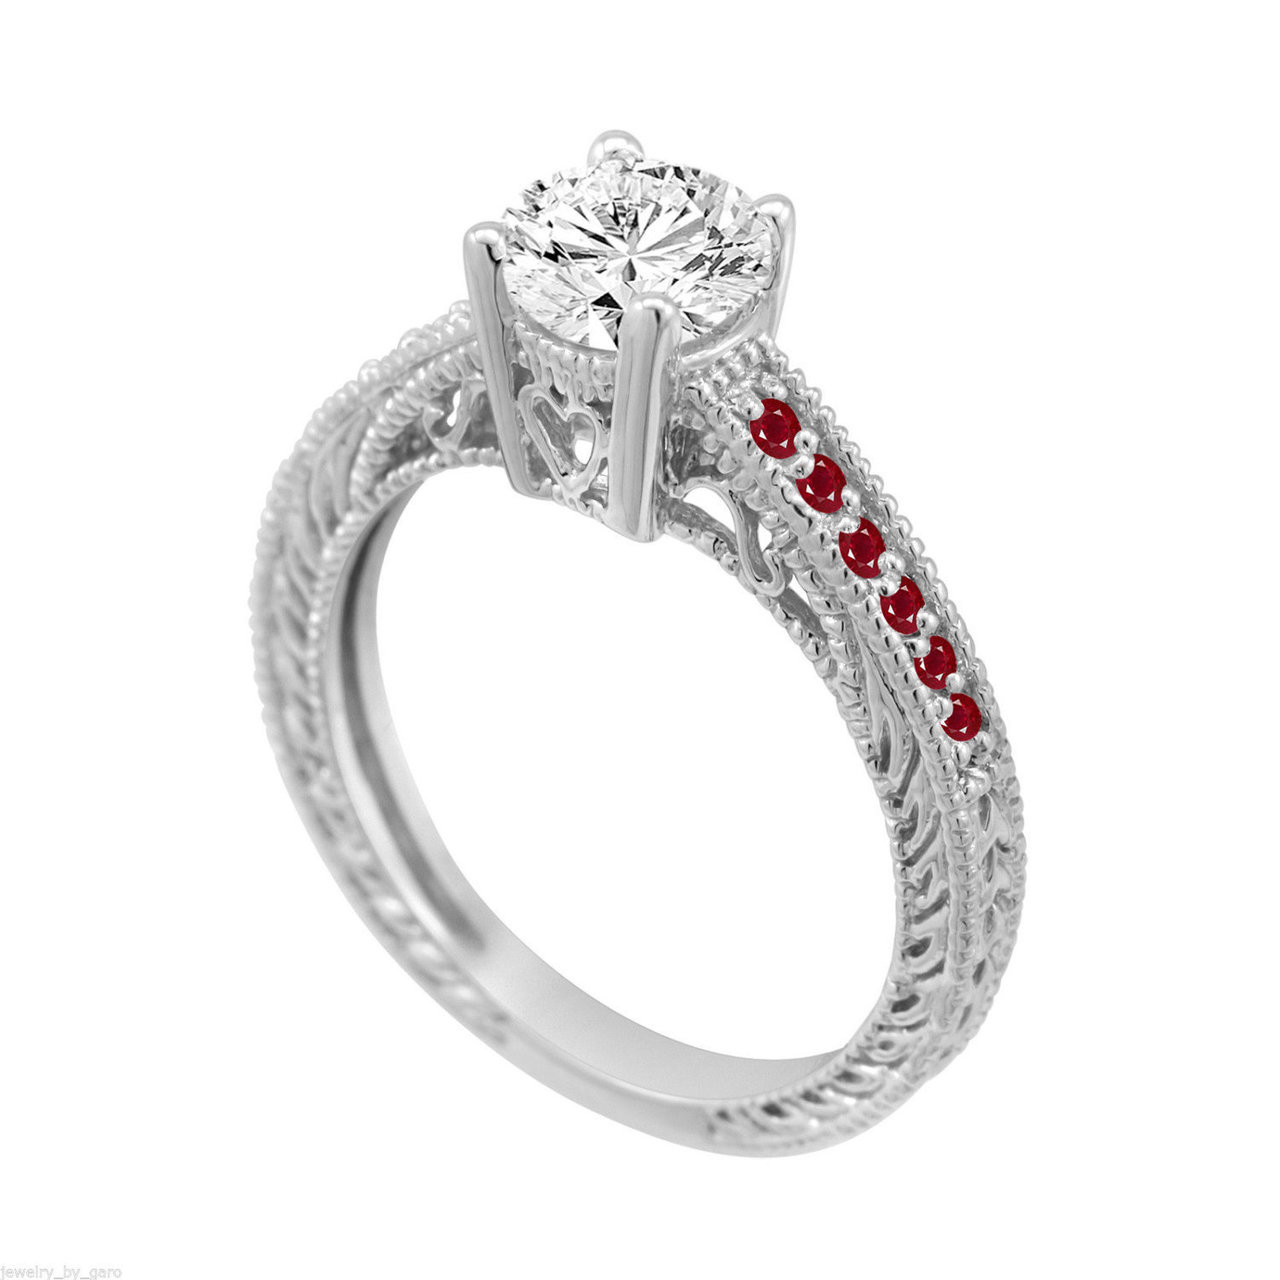 57d4e45f0ee3f Diamond & Rubies Engagement Ring, Vintage Ruby Wedding Ring, Certified 0.70  Carat 14K White Gold Unique Antique Style Handmade